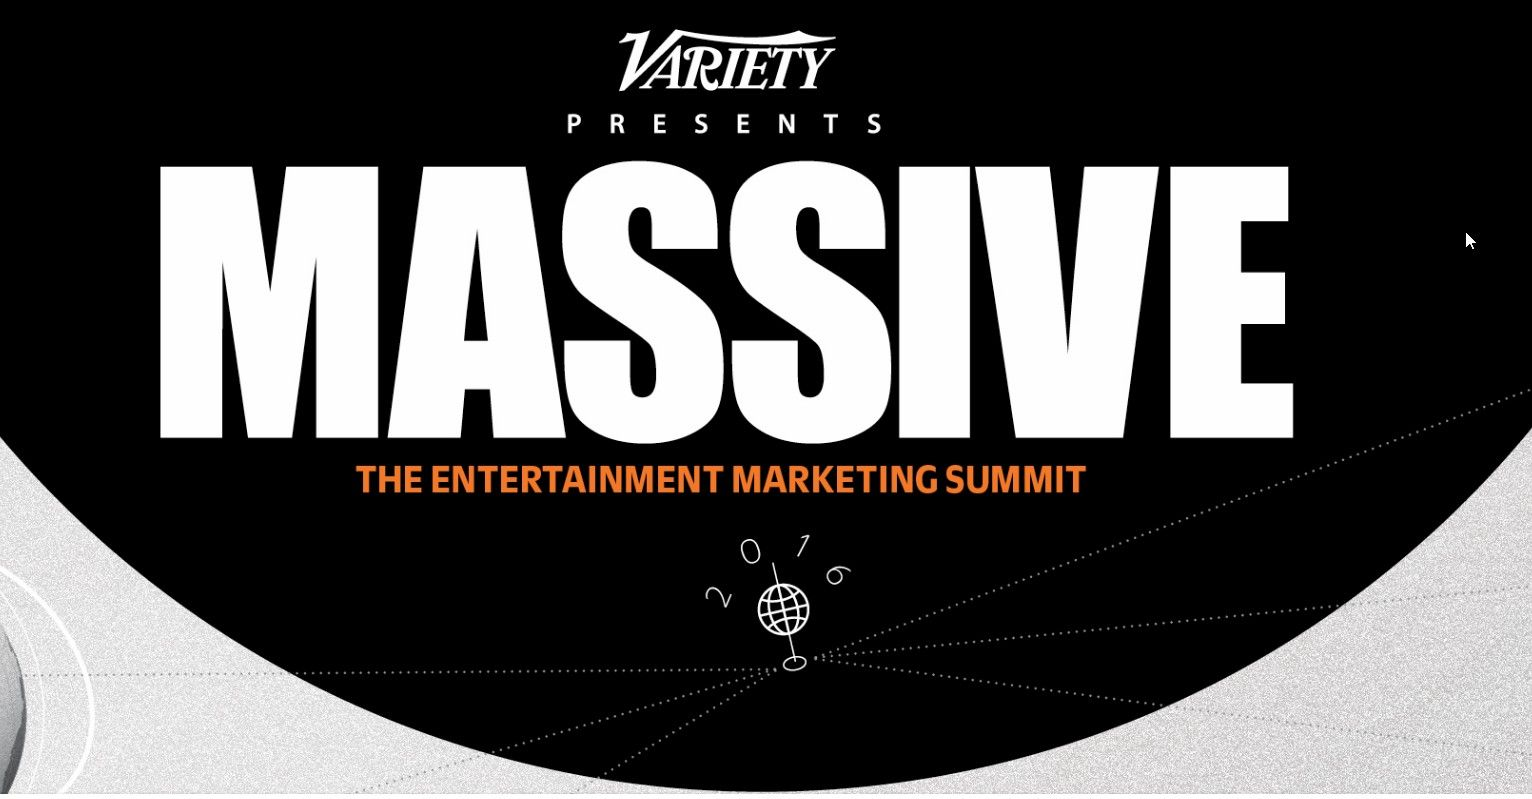 The Entertainment Marketing Summit https://promocionmusical.es/emprendemusica-2017-bases-la-convocatoria/: